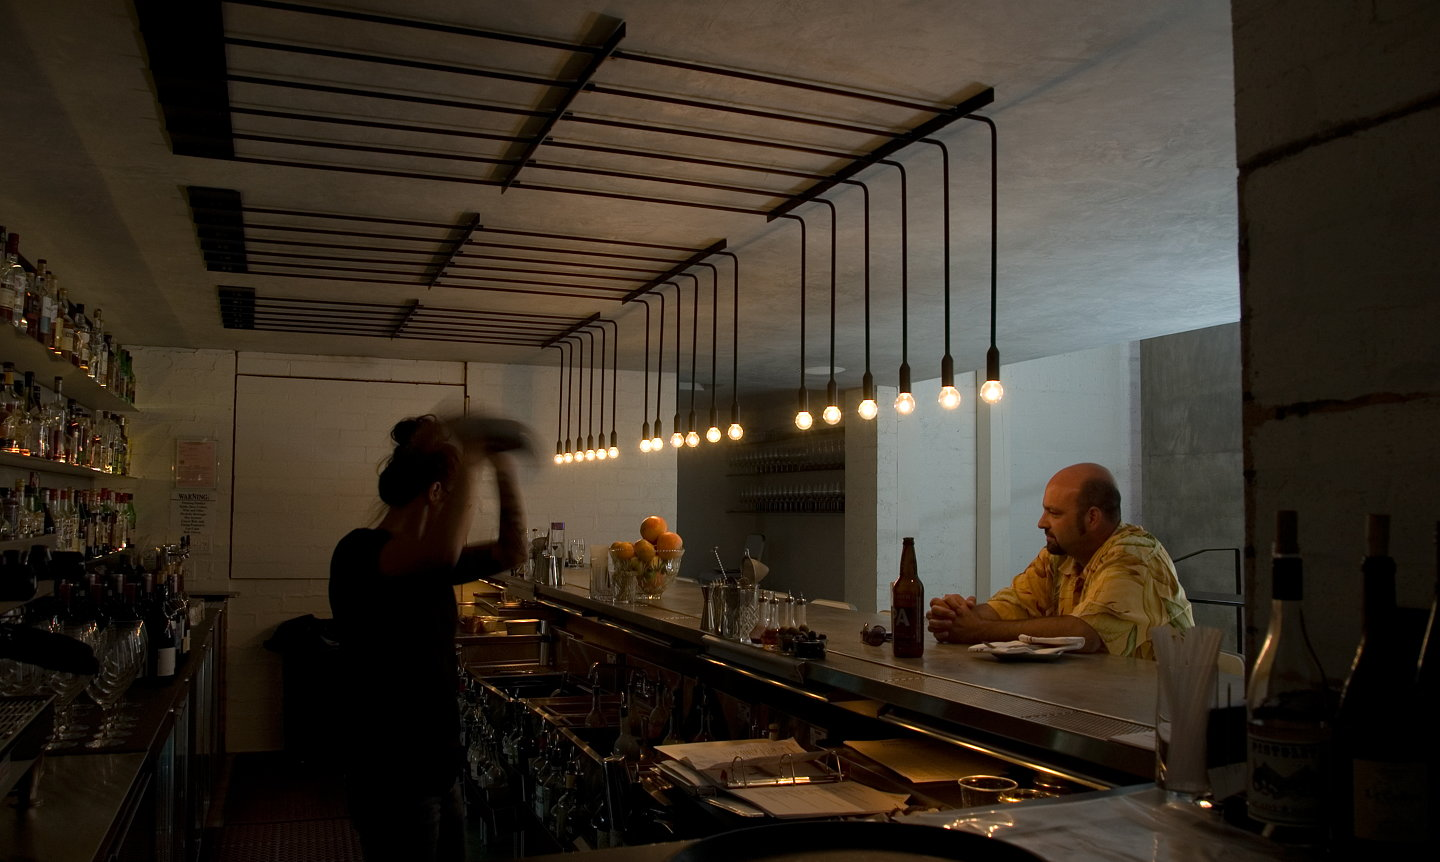 Restaurant Kitchen Lighting pslab designs minimalist lighting solution for workshop kitchen + bar